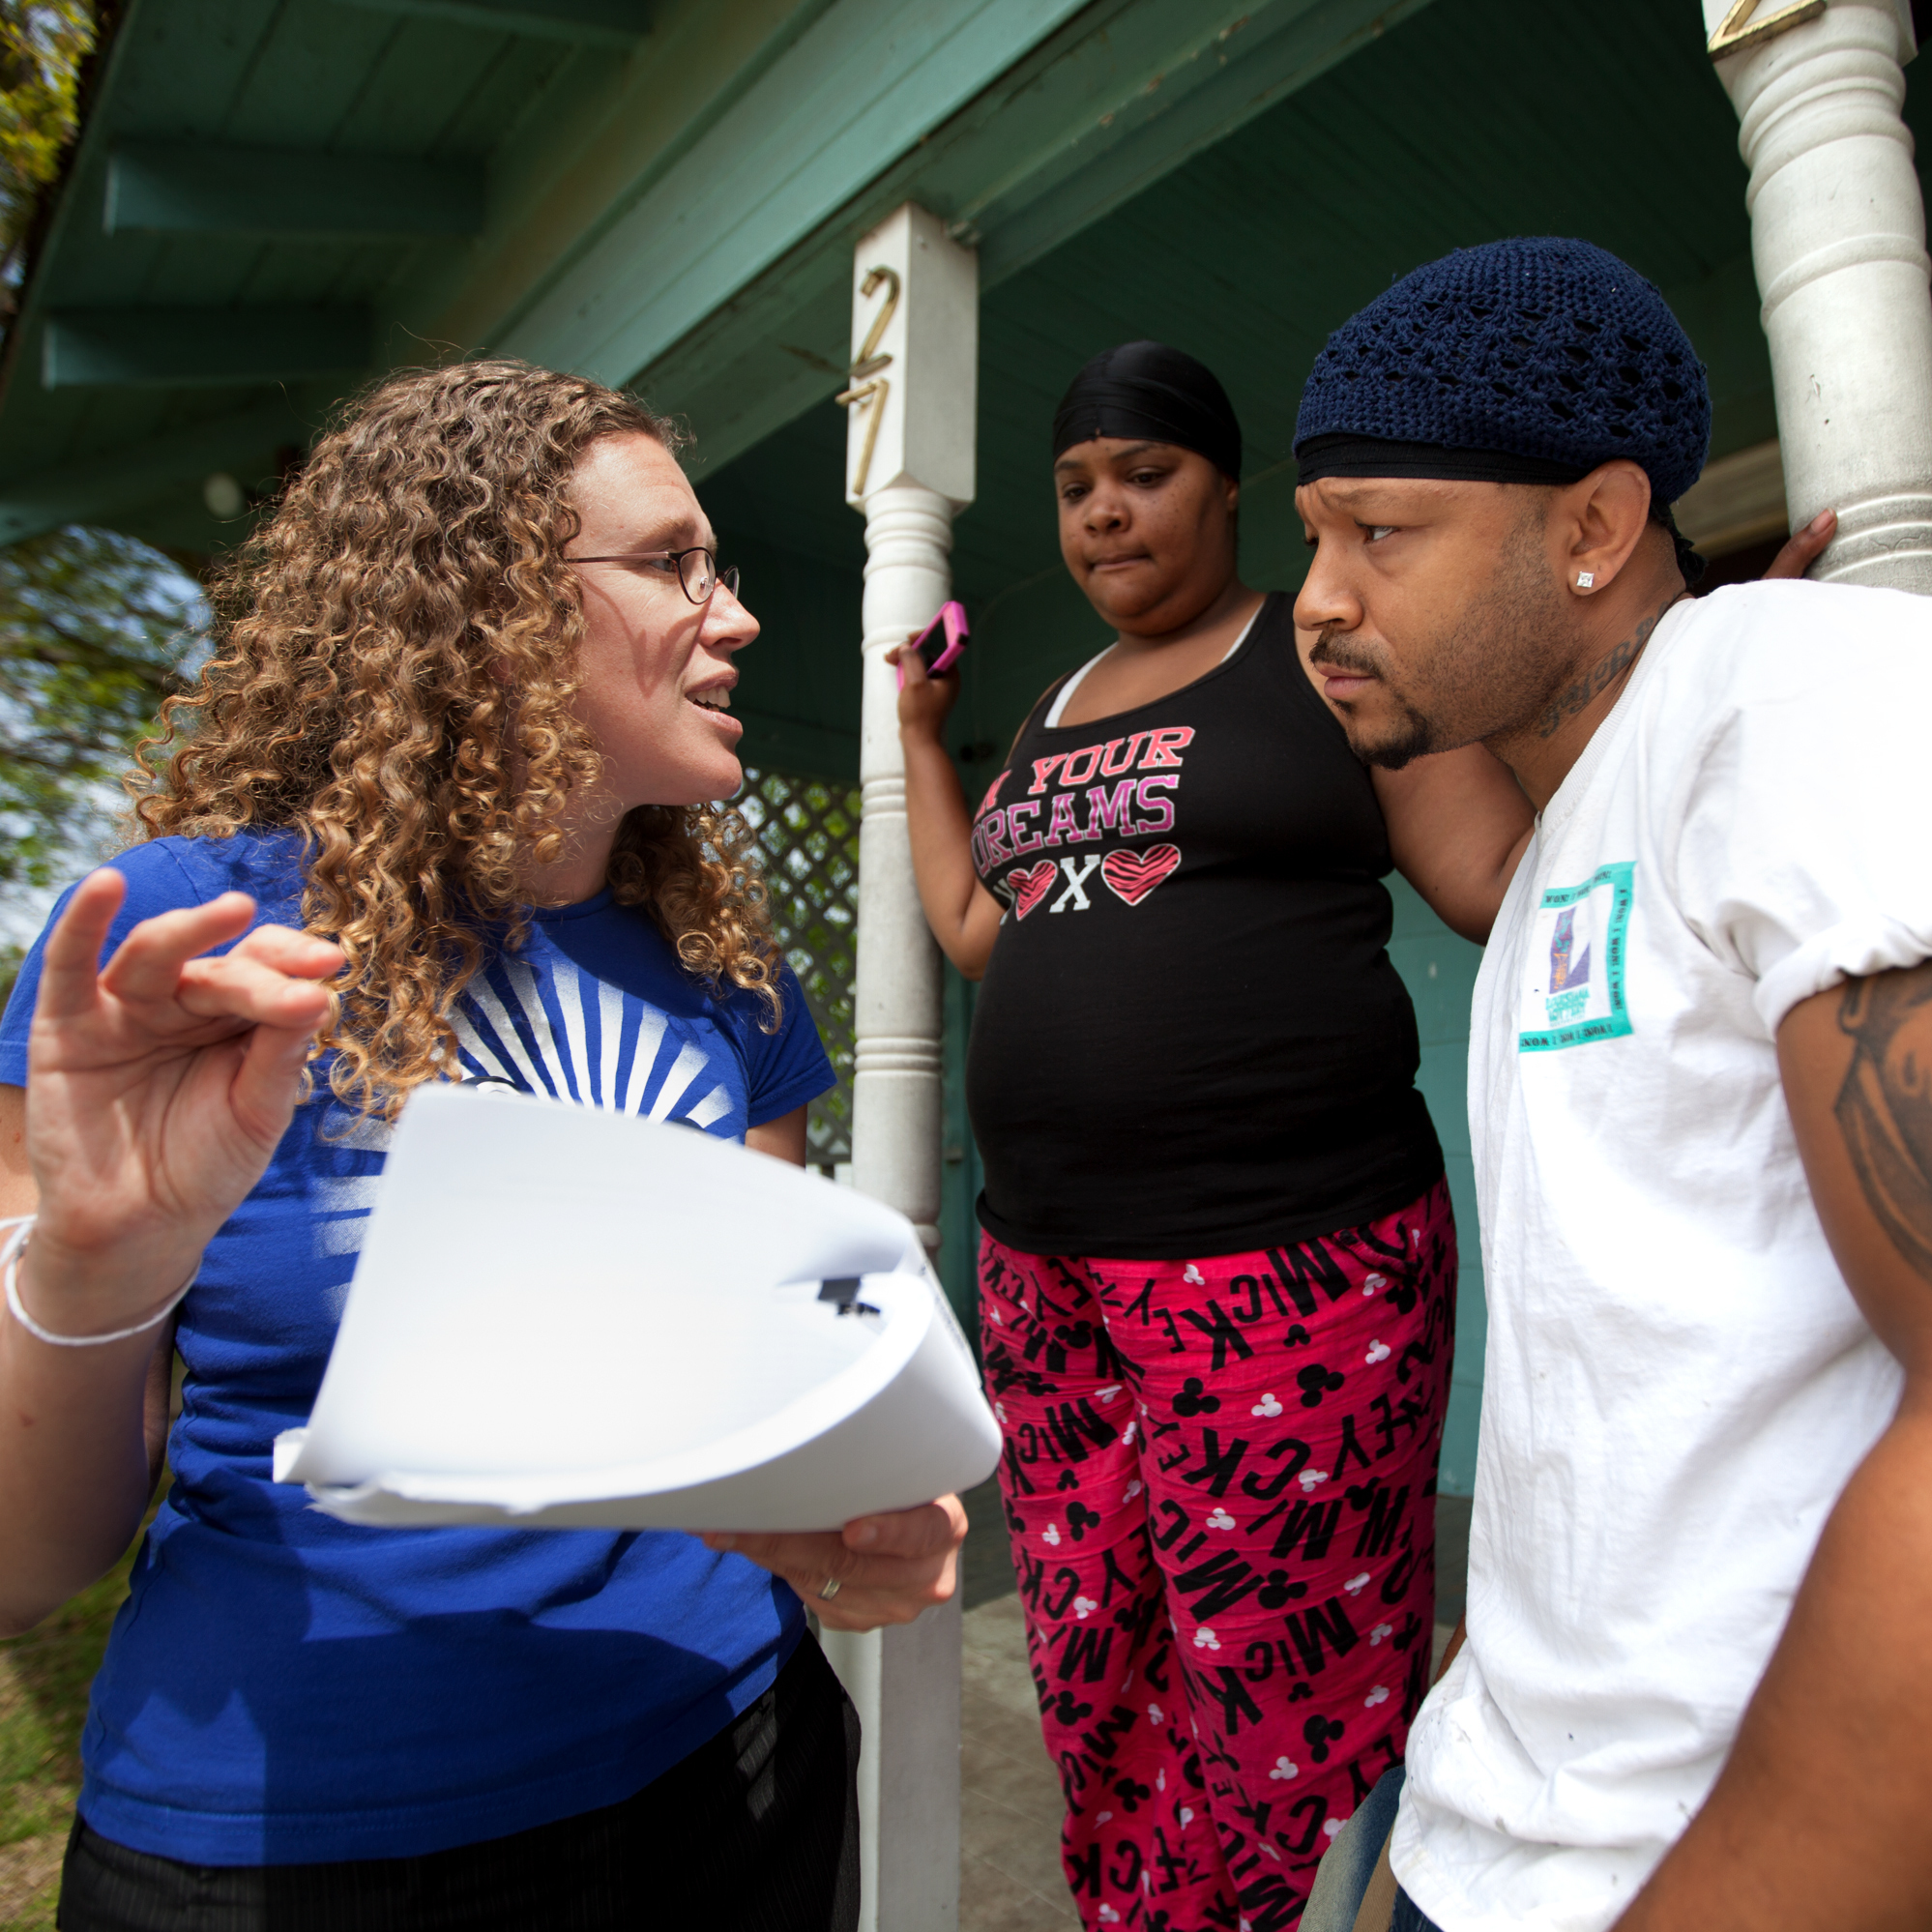 Anna Hrybyk talks with Standard Heights neighborhood residents Terrica Hardnett (middle) and Terrell Sylvas (right) about the current state of the EPA's investigation into the Exxon Mobil plant.